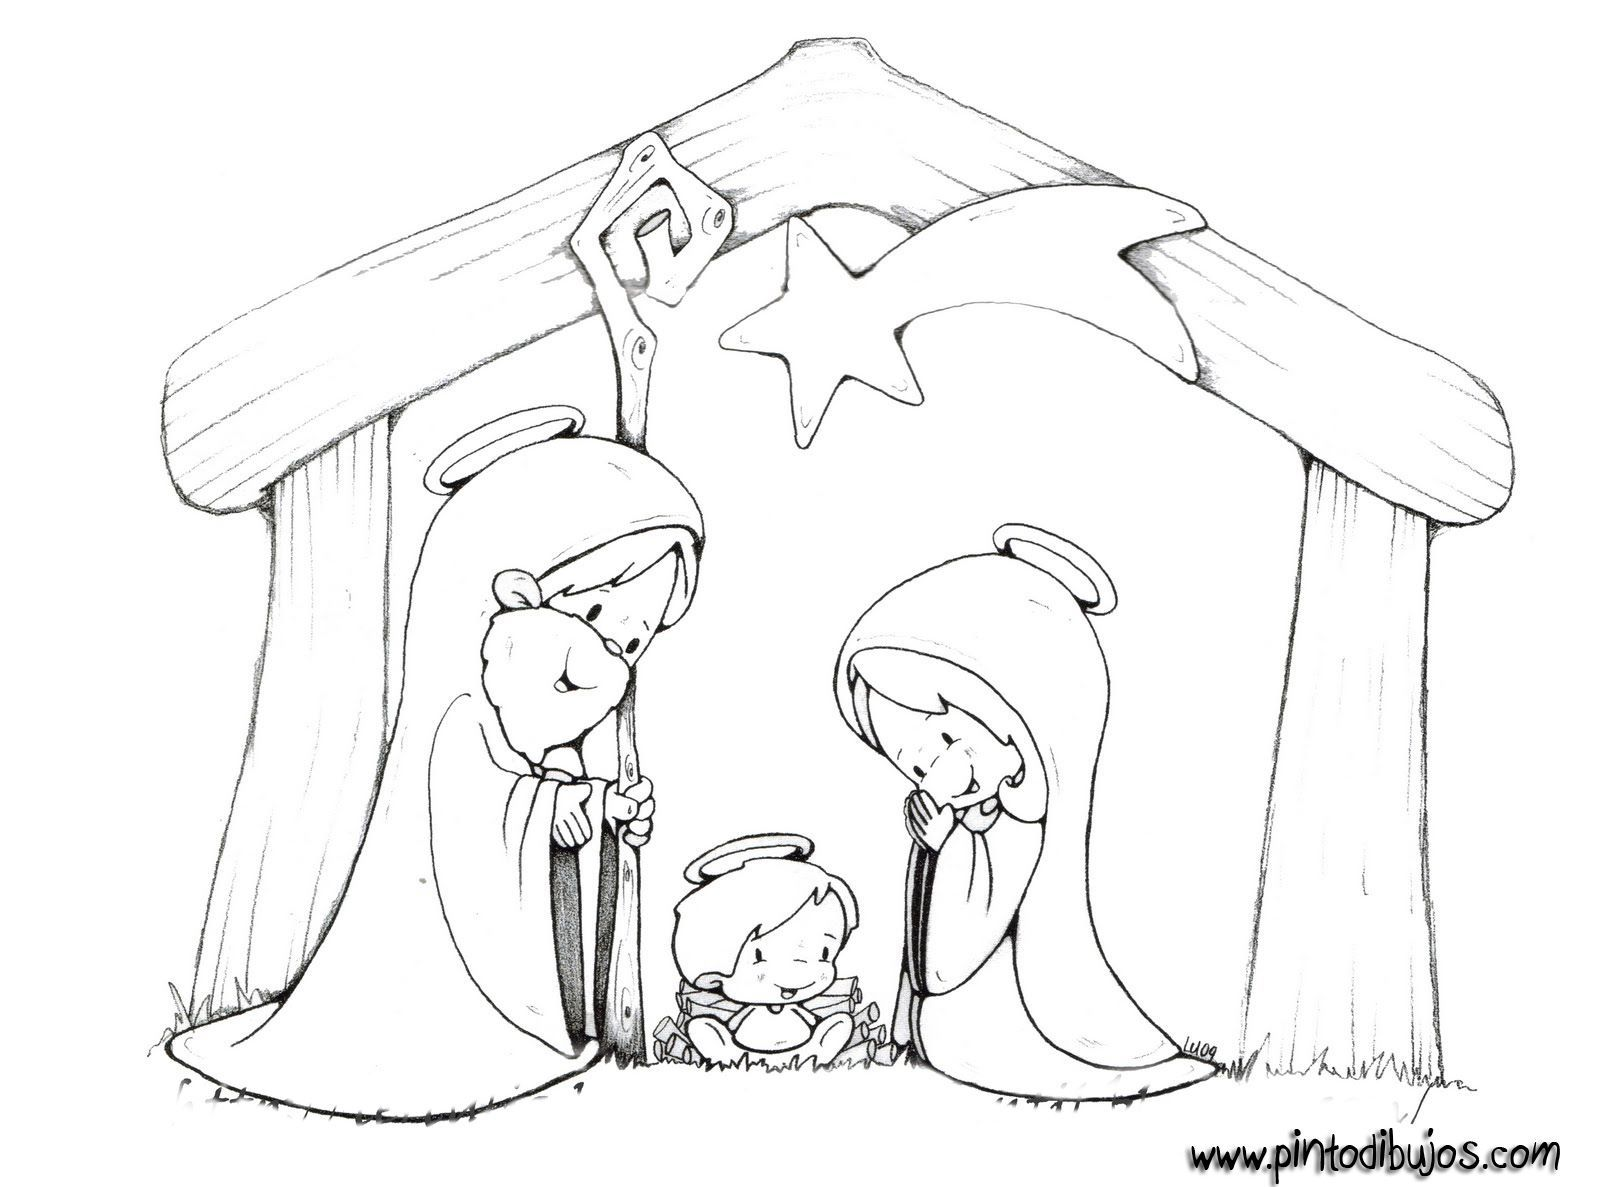 Colouring sheets nativity scene -  Nativity Scene Coloring 18 Lot More Coloring Pages On Web Site